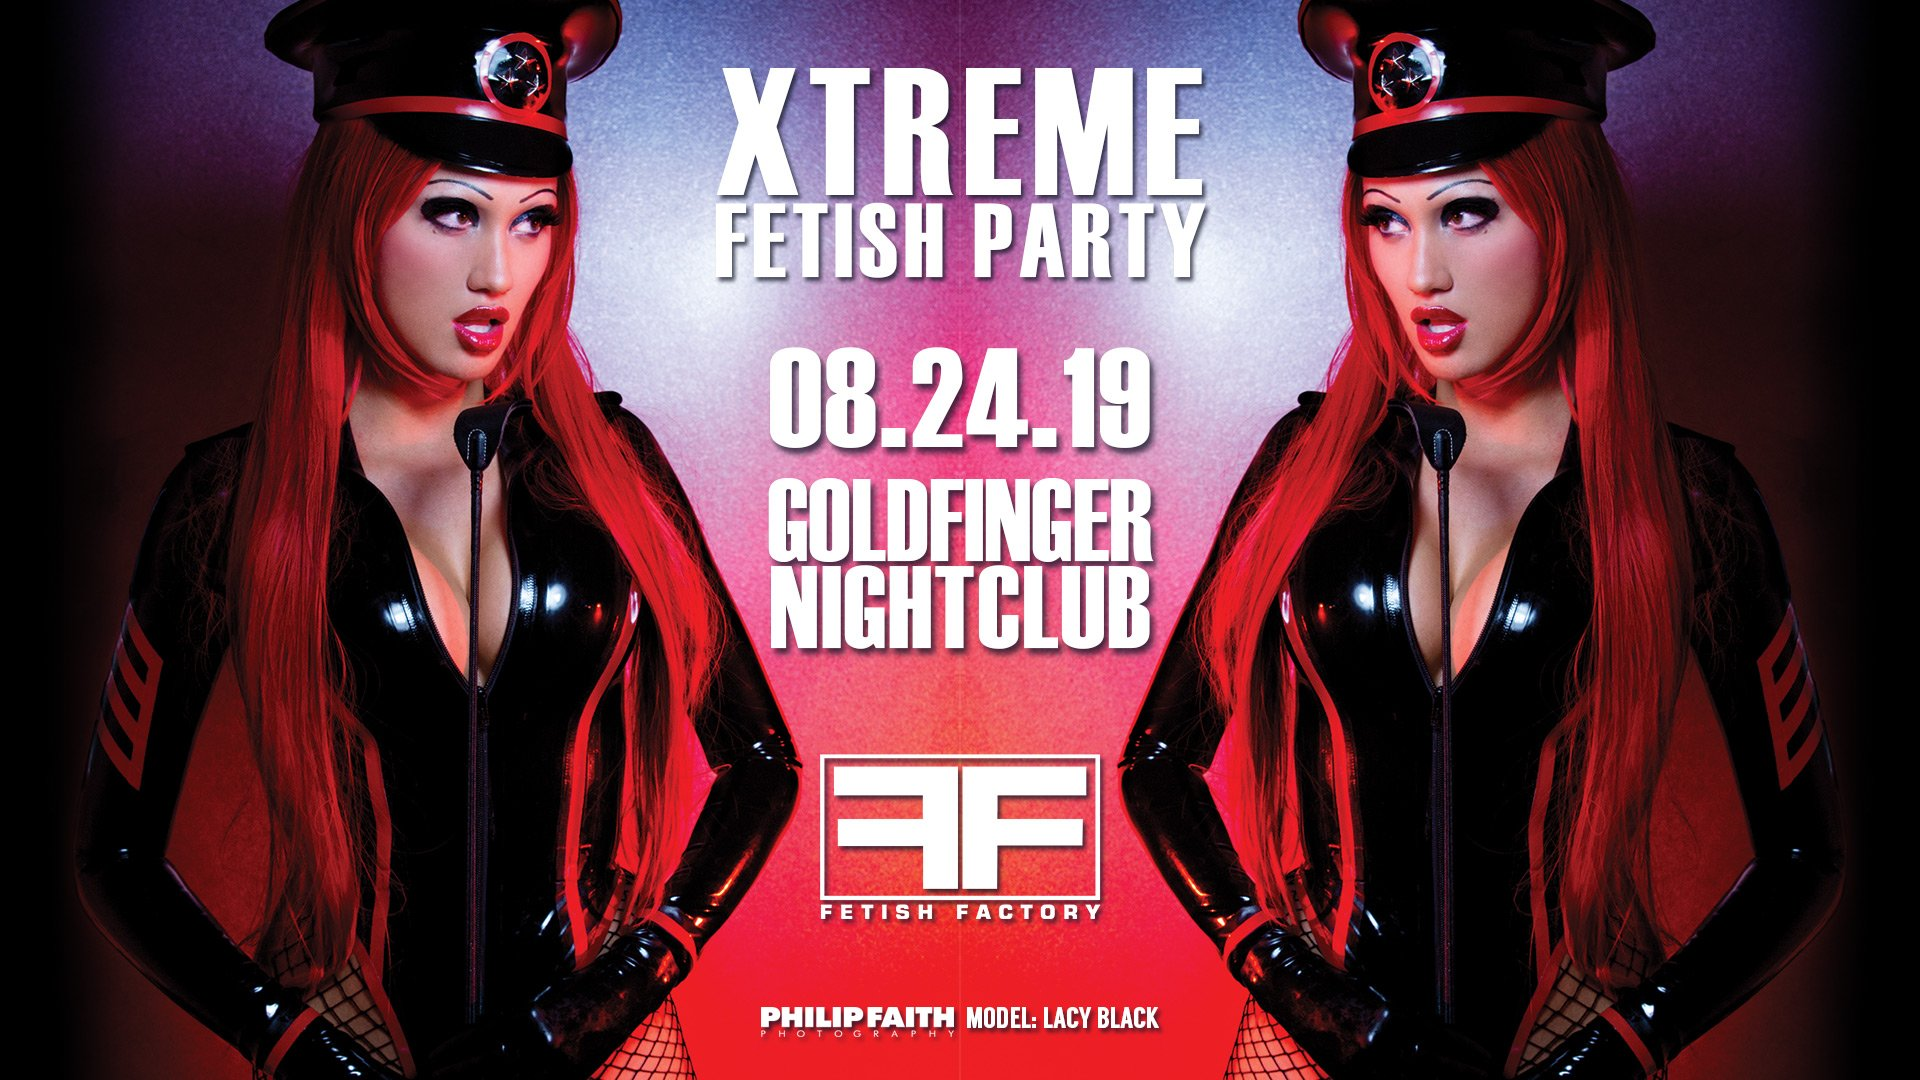 Xtreme Fetish Party Saturday, August 24th Goldfinger Nightclub